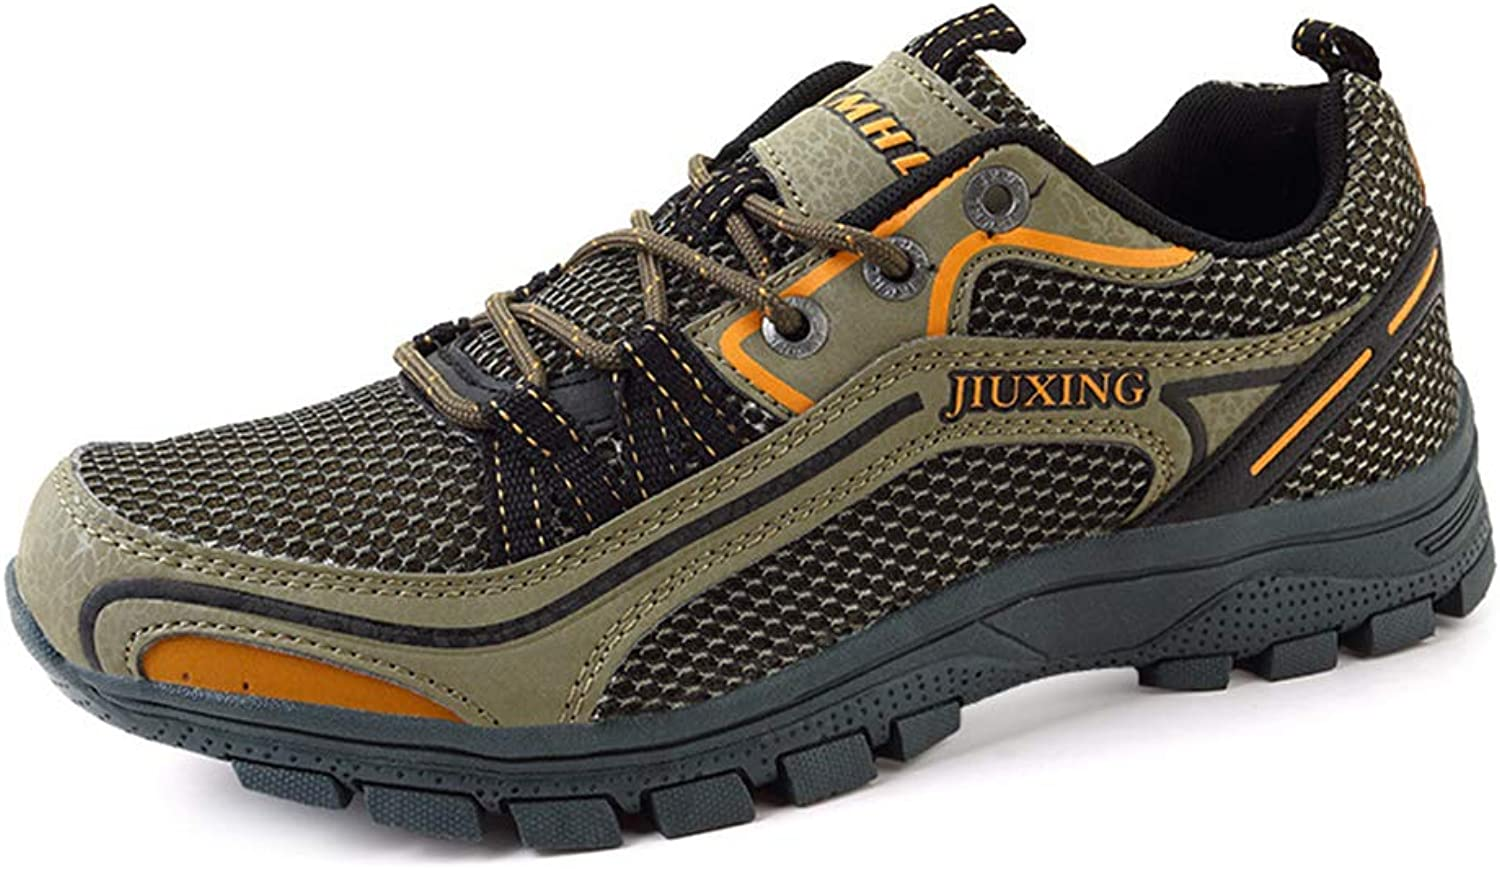 SELCNG Hiking shoes Unisex Walking shoes Waterproof Walking shoes Men's Walking shoes with Outdoor Sports Hiking shoes Non-Slip outsole-green-42